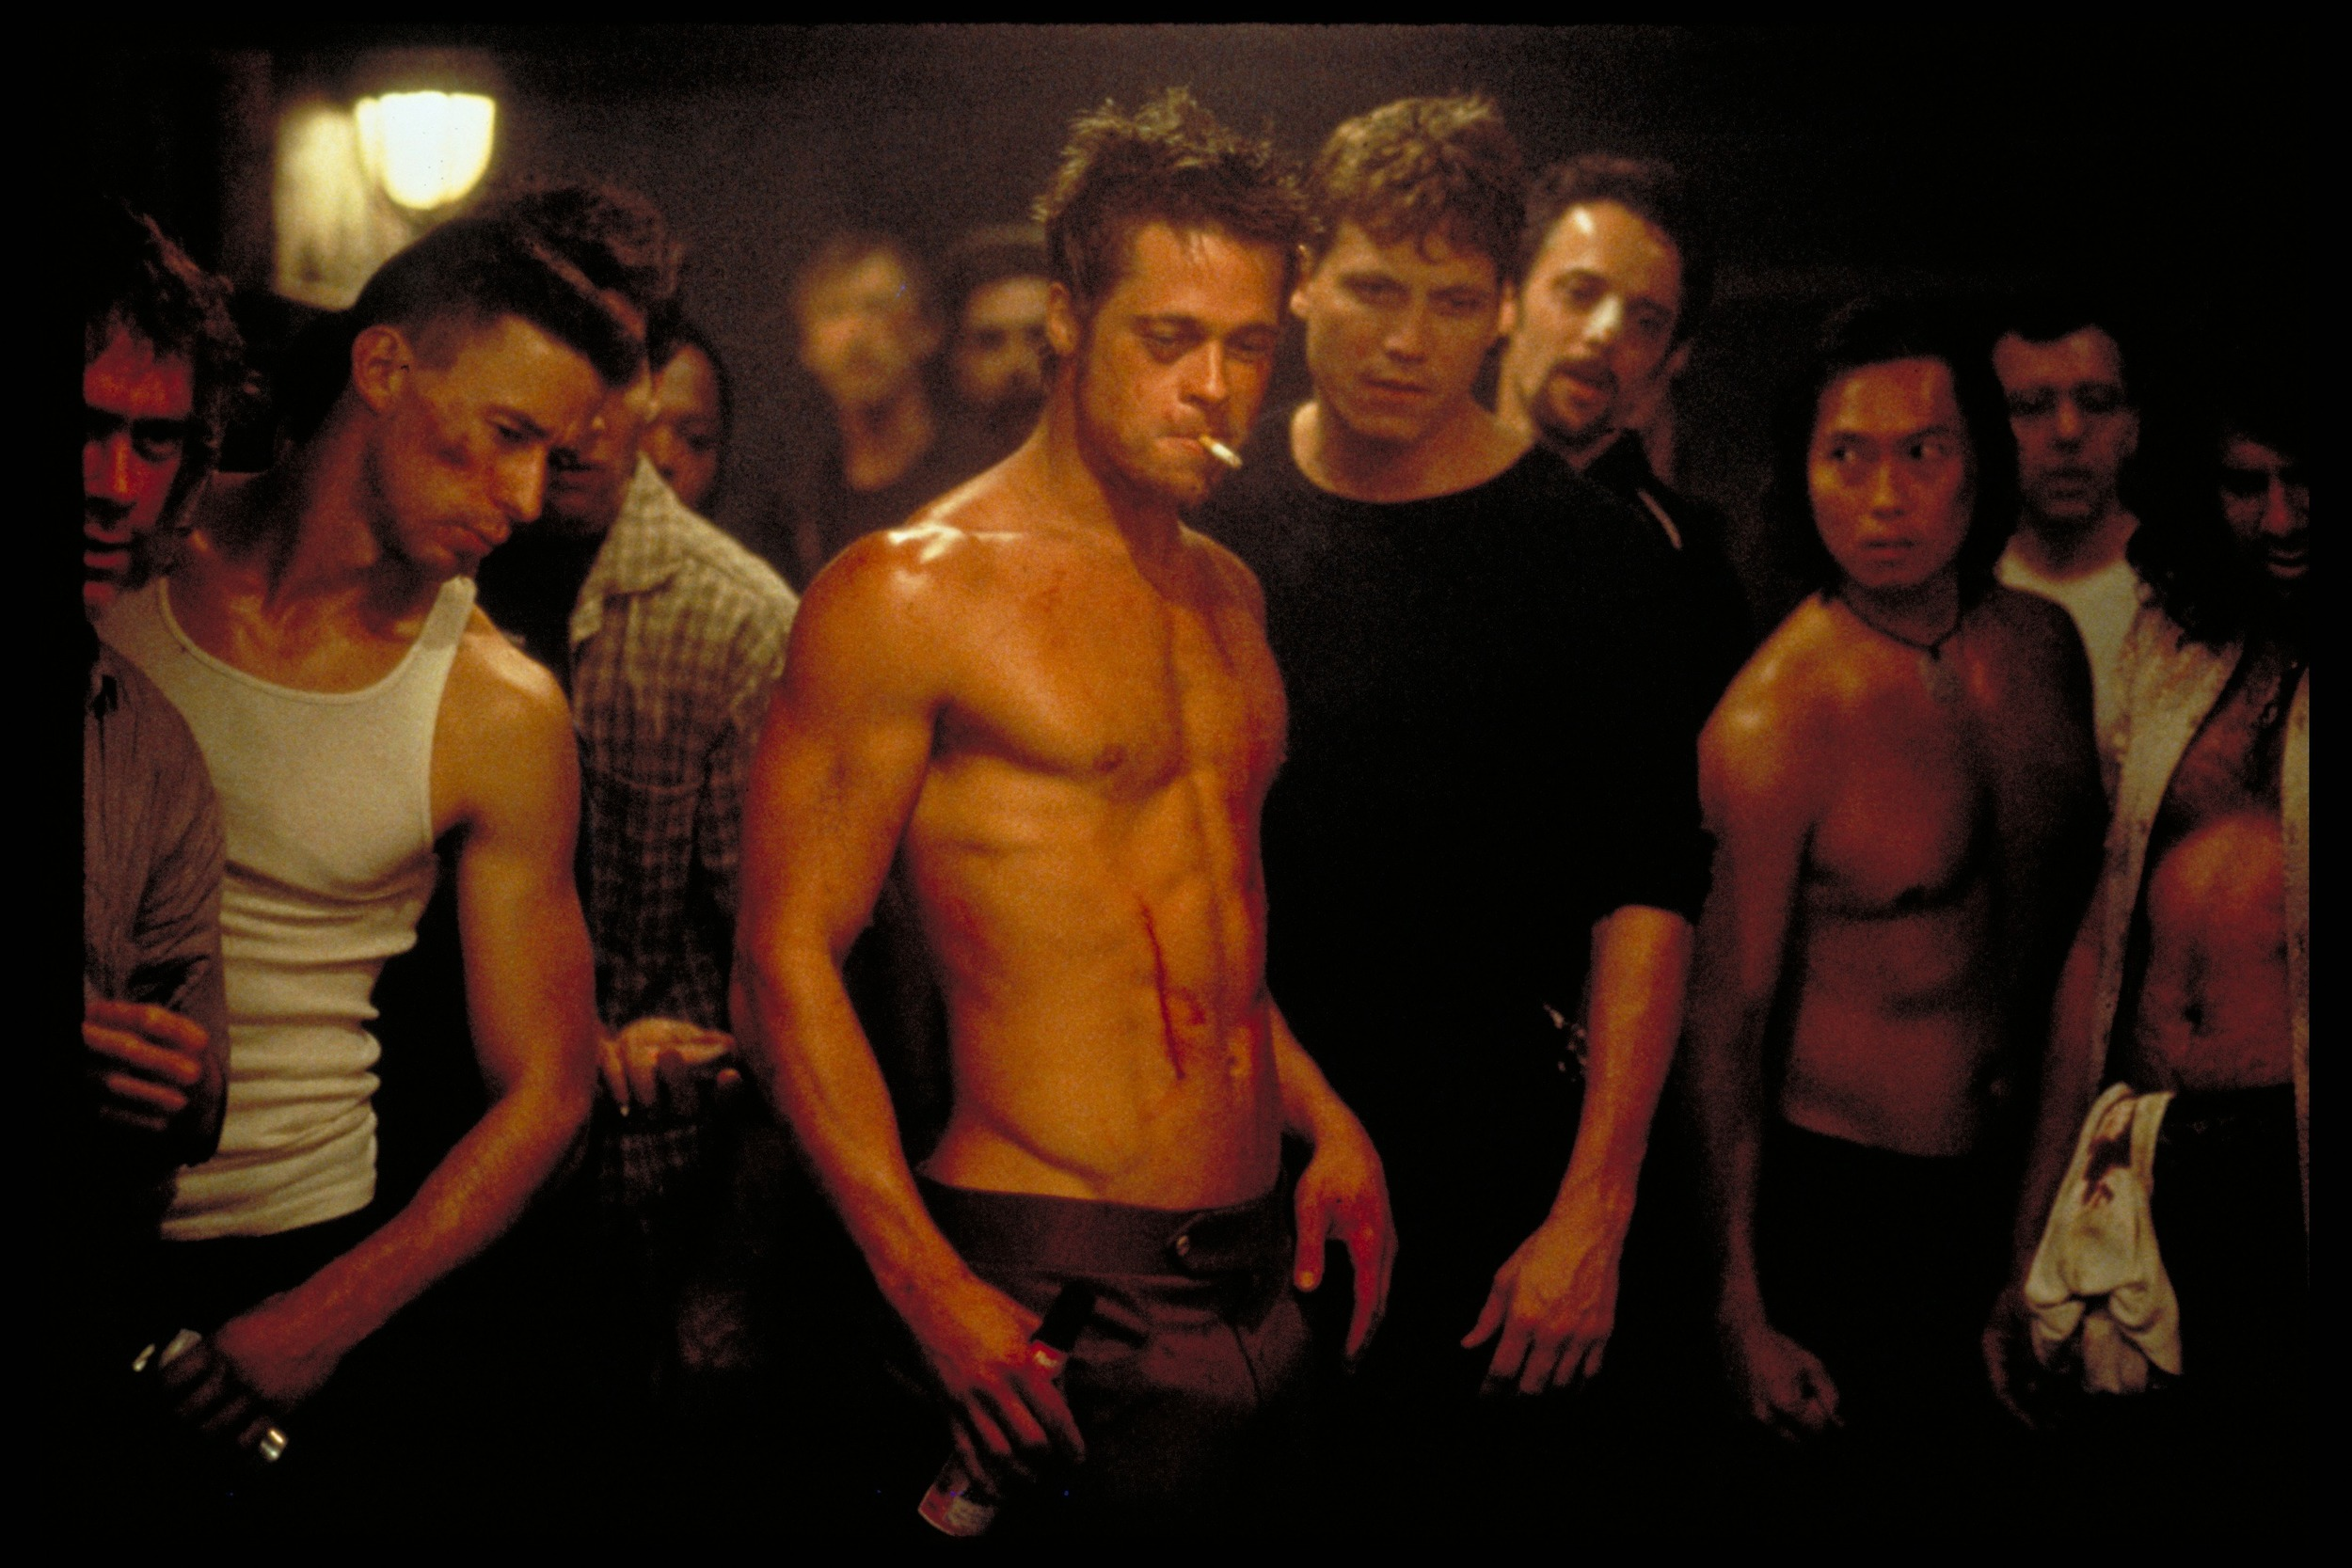 This has nothing to do with the subject. It's just Brad Pitt looking awesome in Fight Club.